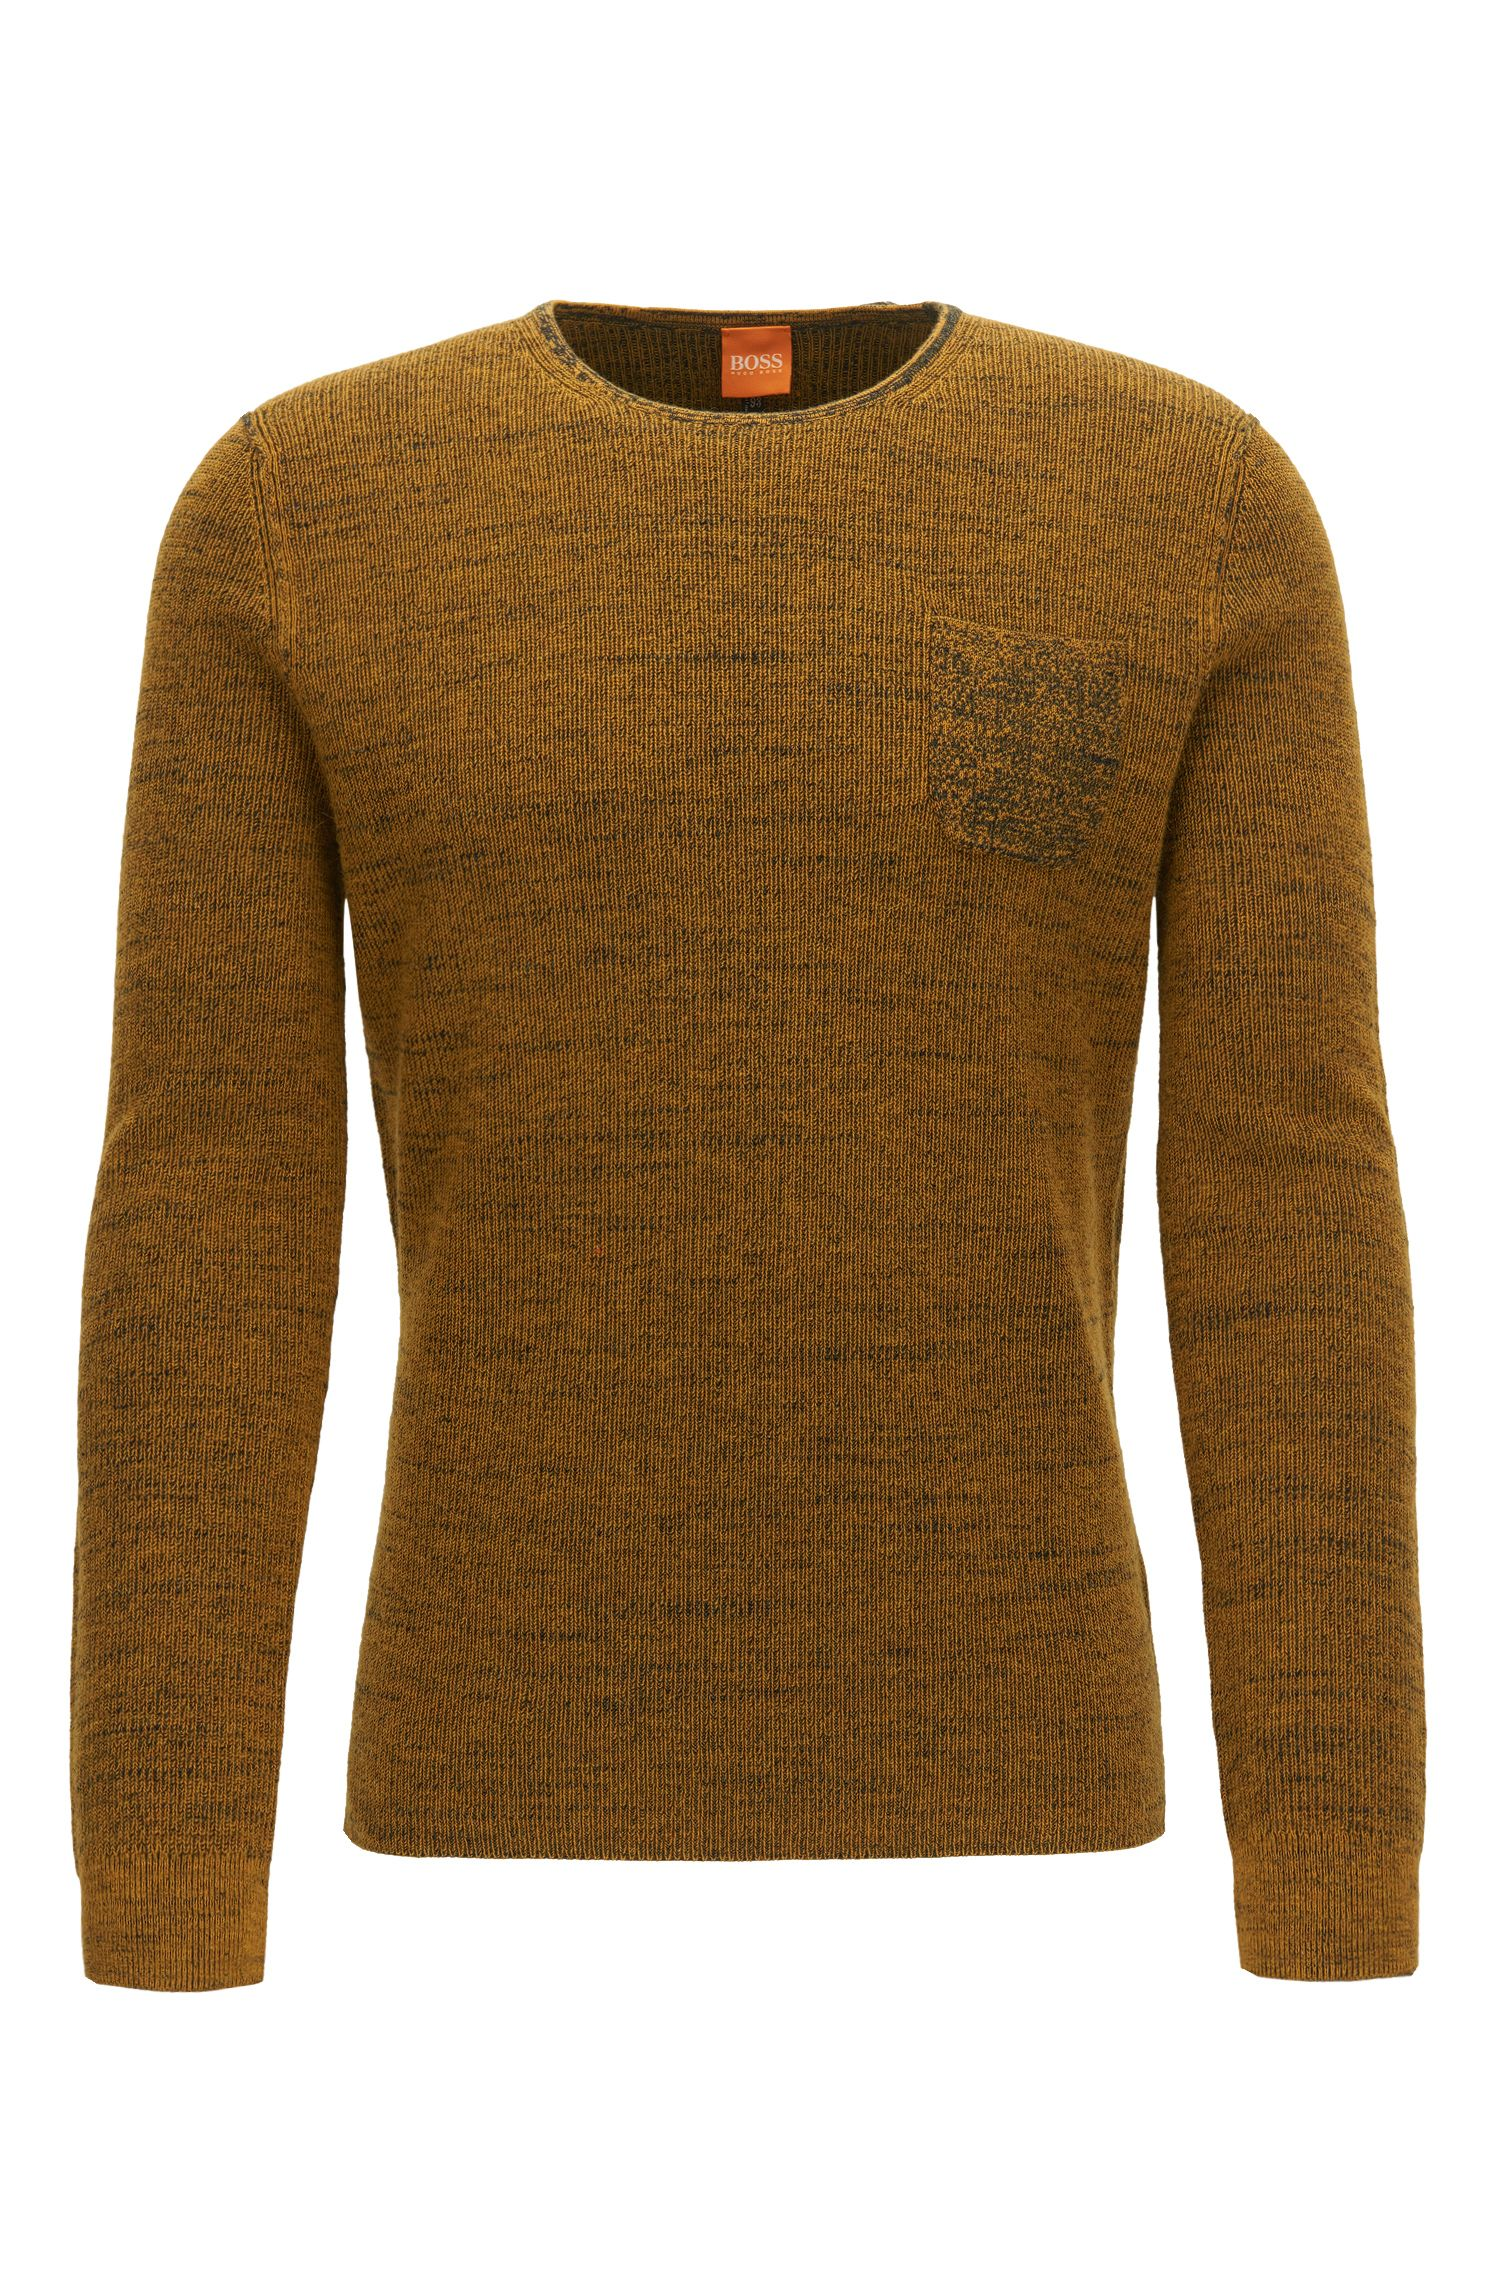 Crew-neck sweater in two-tone fabric